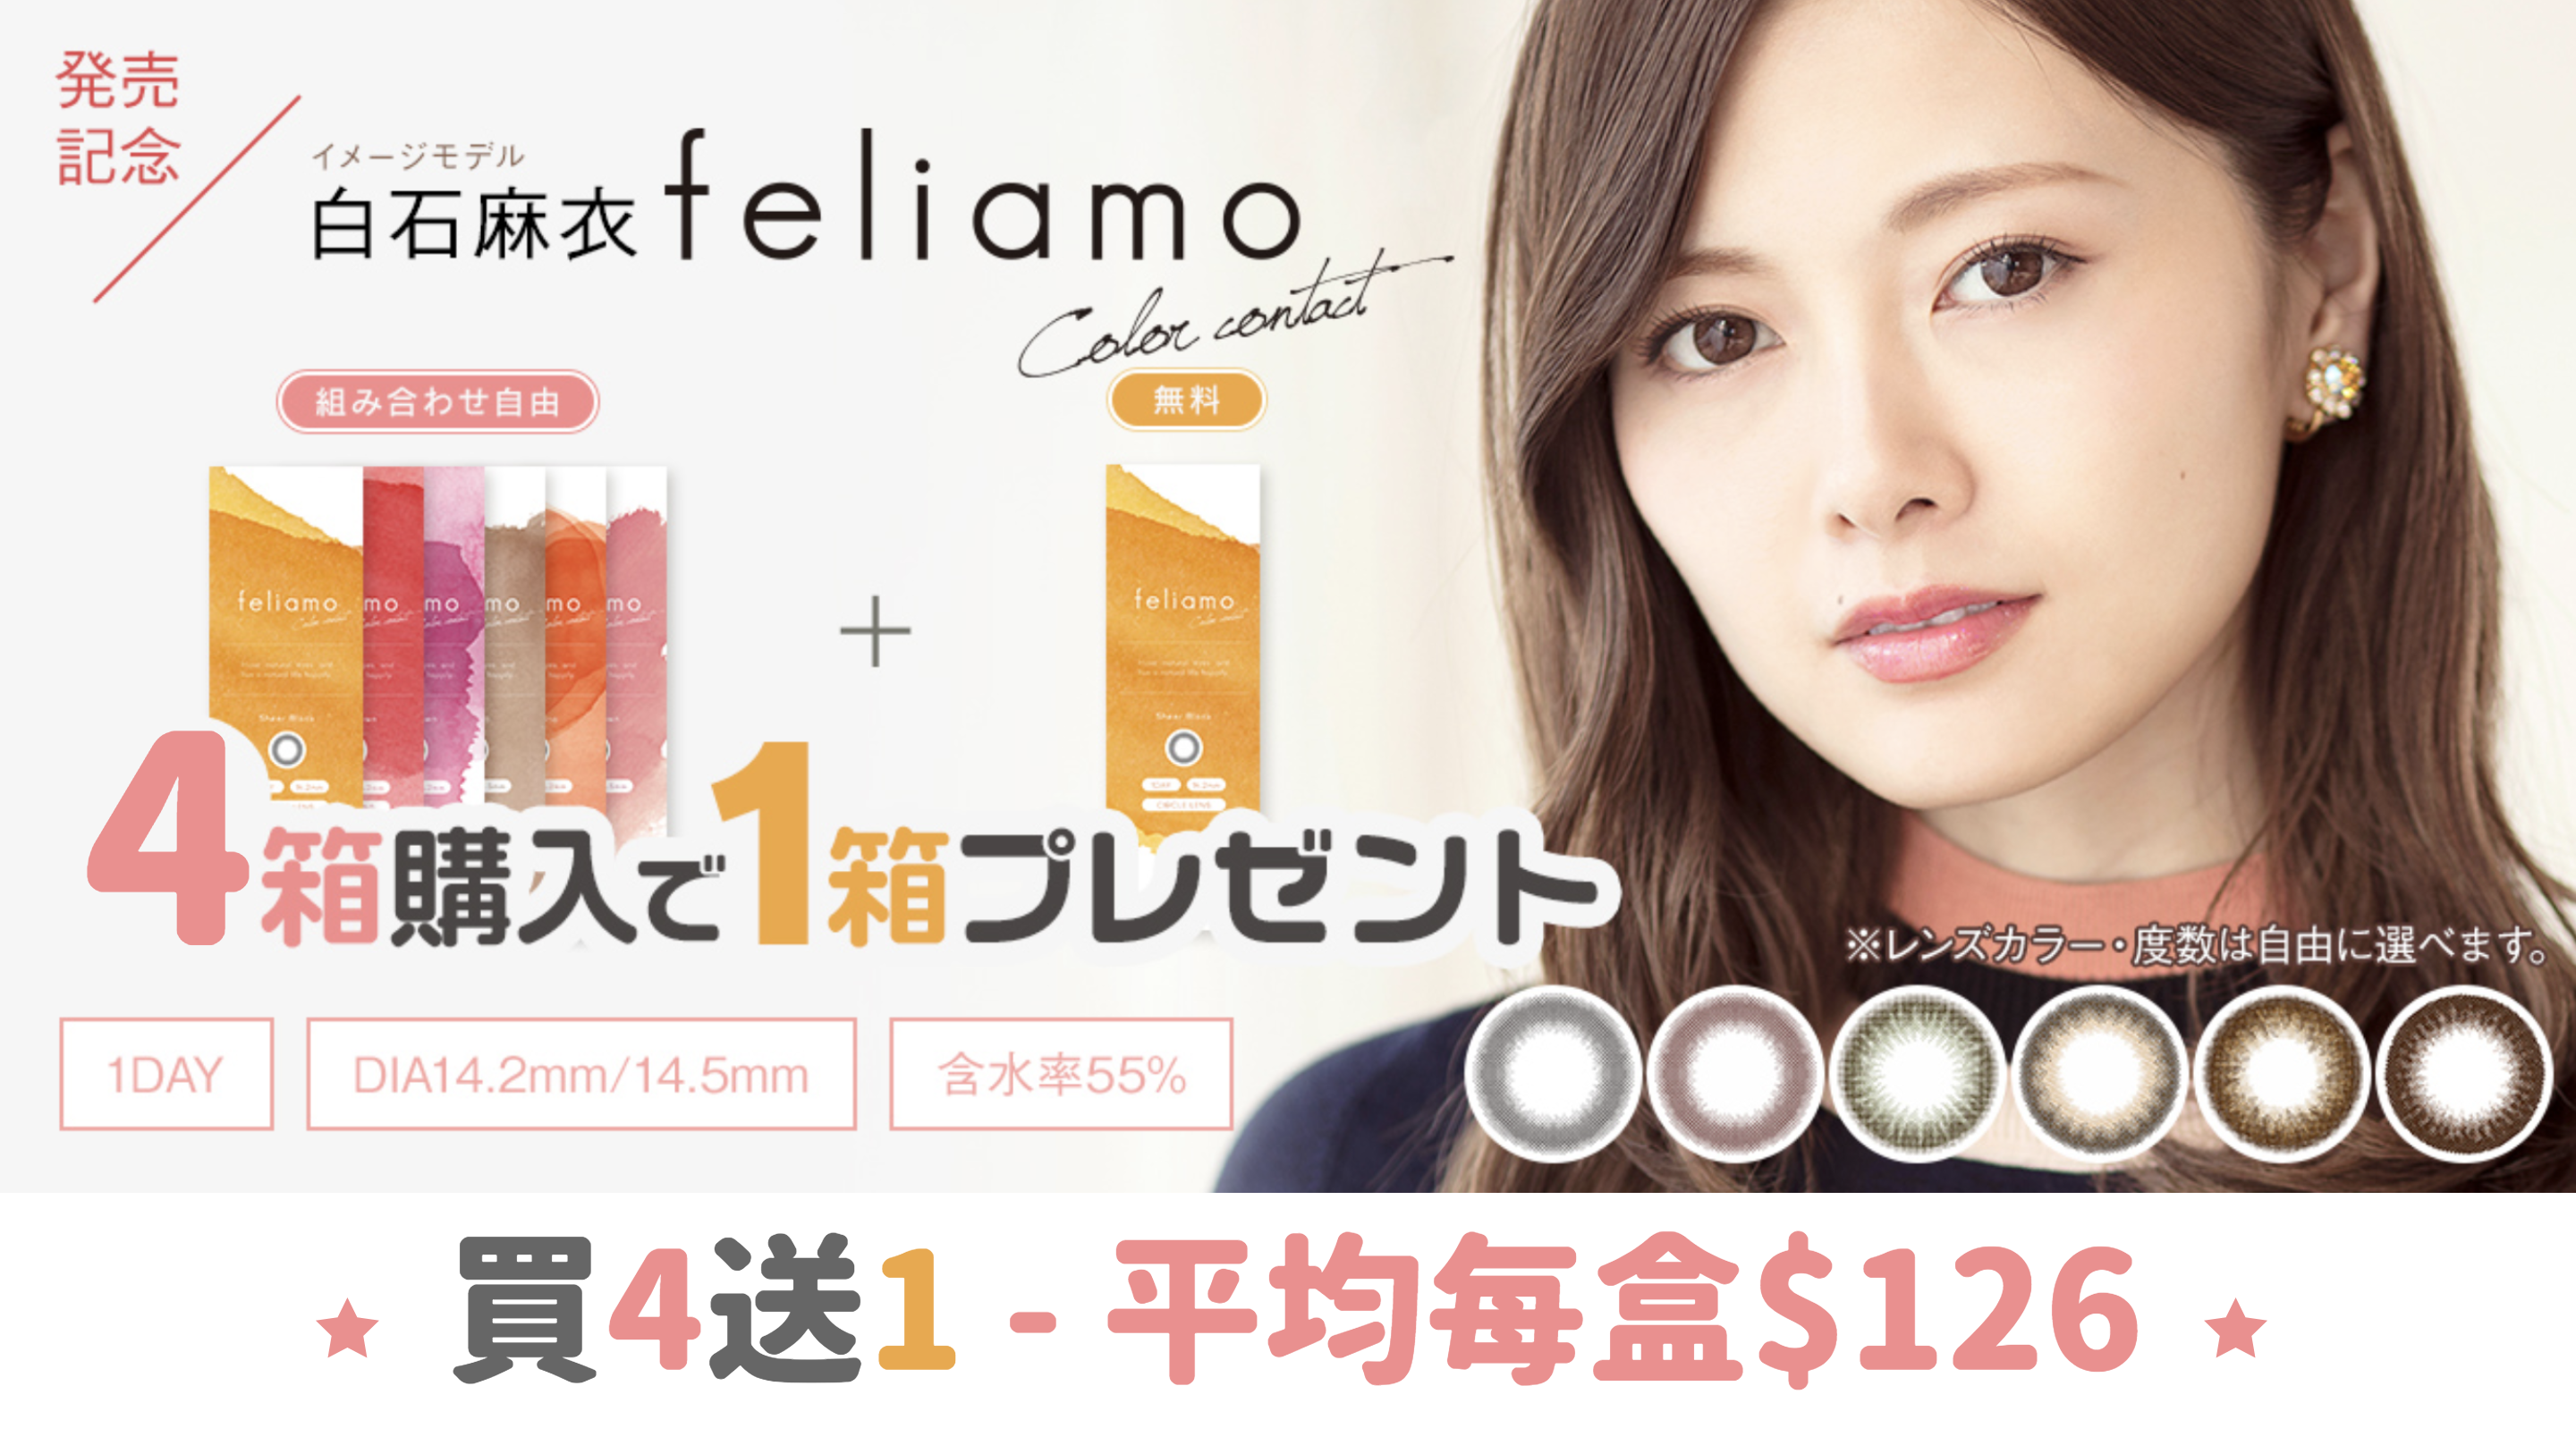 Pia Feliamo Color Con隱形眼鏡